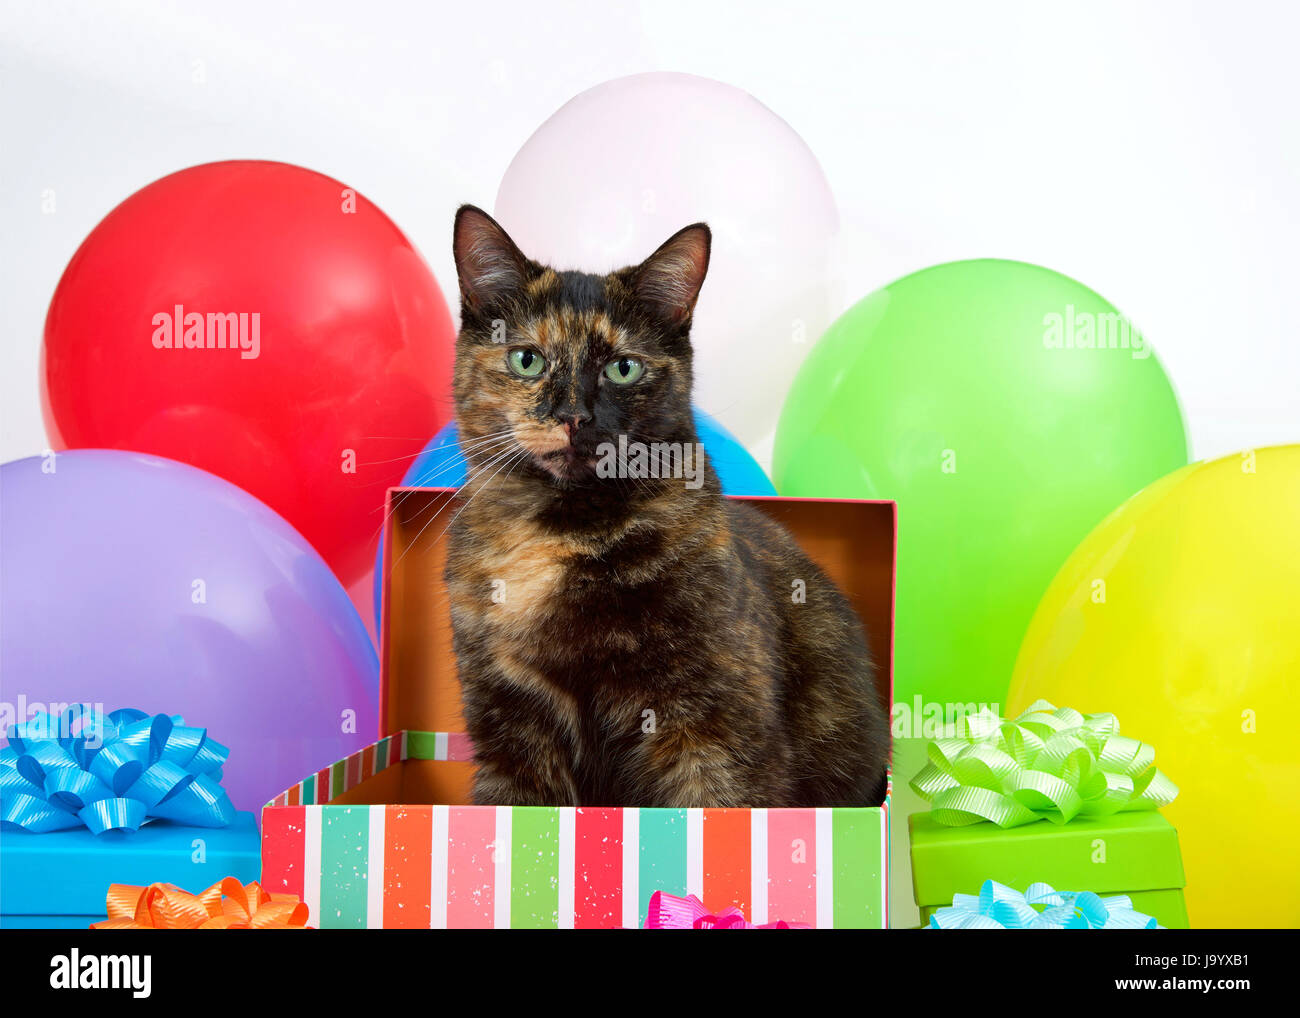 Tortie Torbie Tabby Cat Sitting In A Birthday Present Box Surrounded By Colorful Presents And Bright Balloons Surprise Party